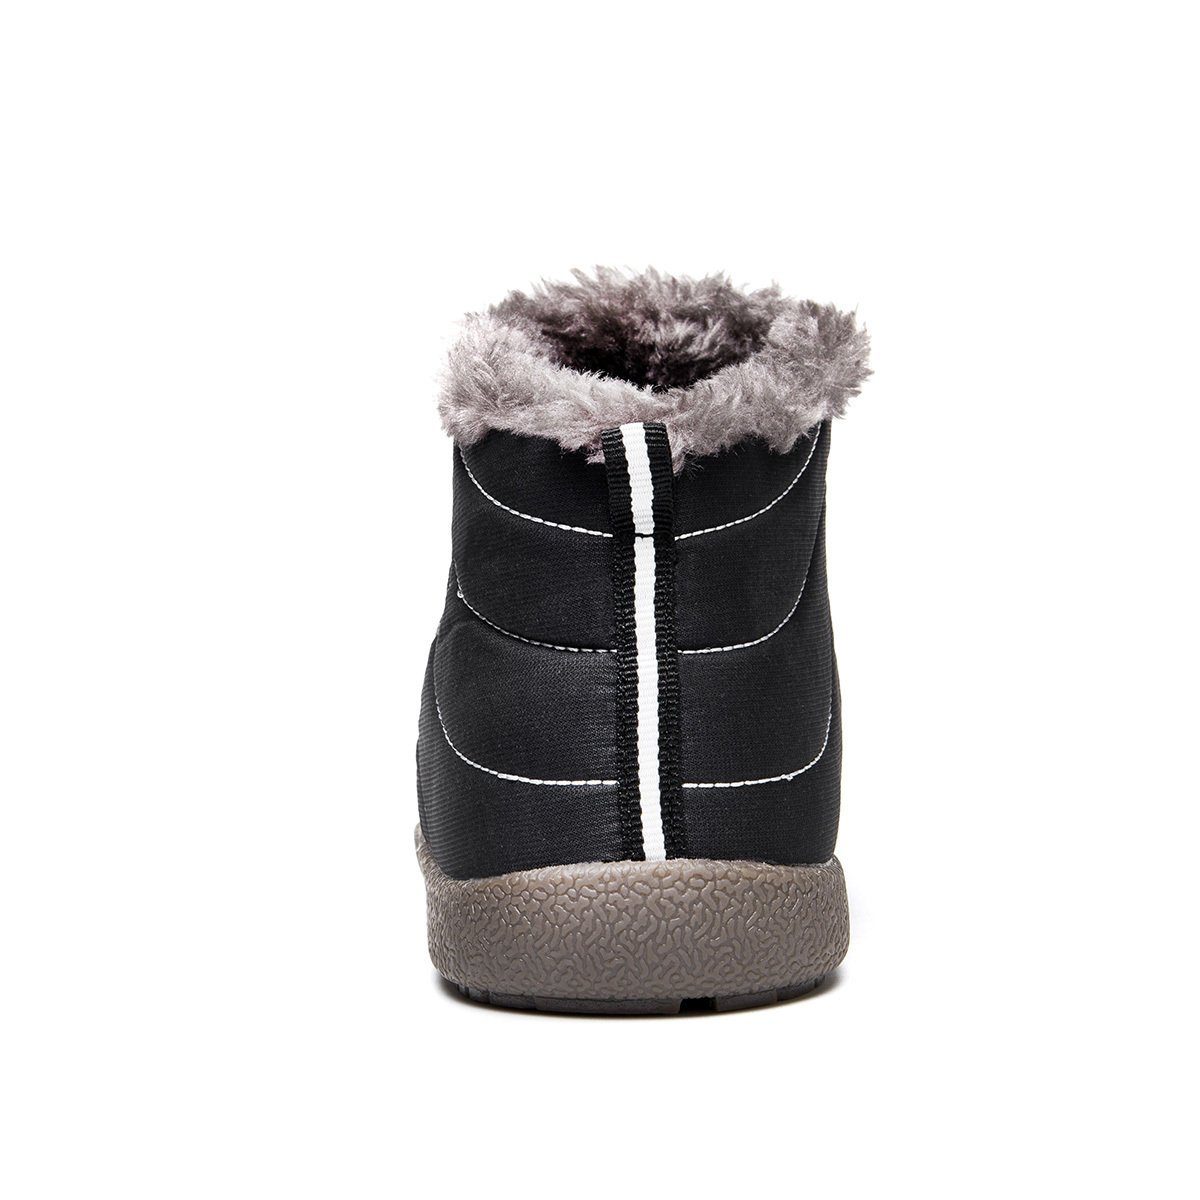 Enly Slip on Snow Boots Men Women,Anti-Slip Lightweight Ankle Bootie Fully Fur